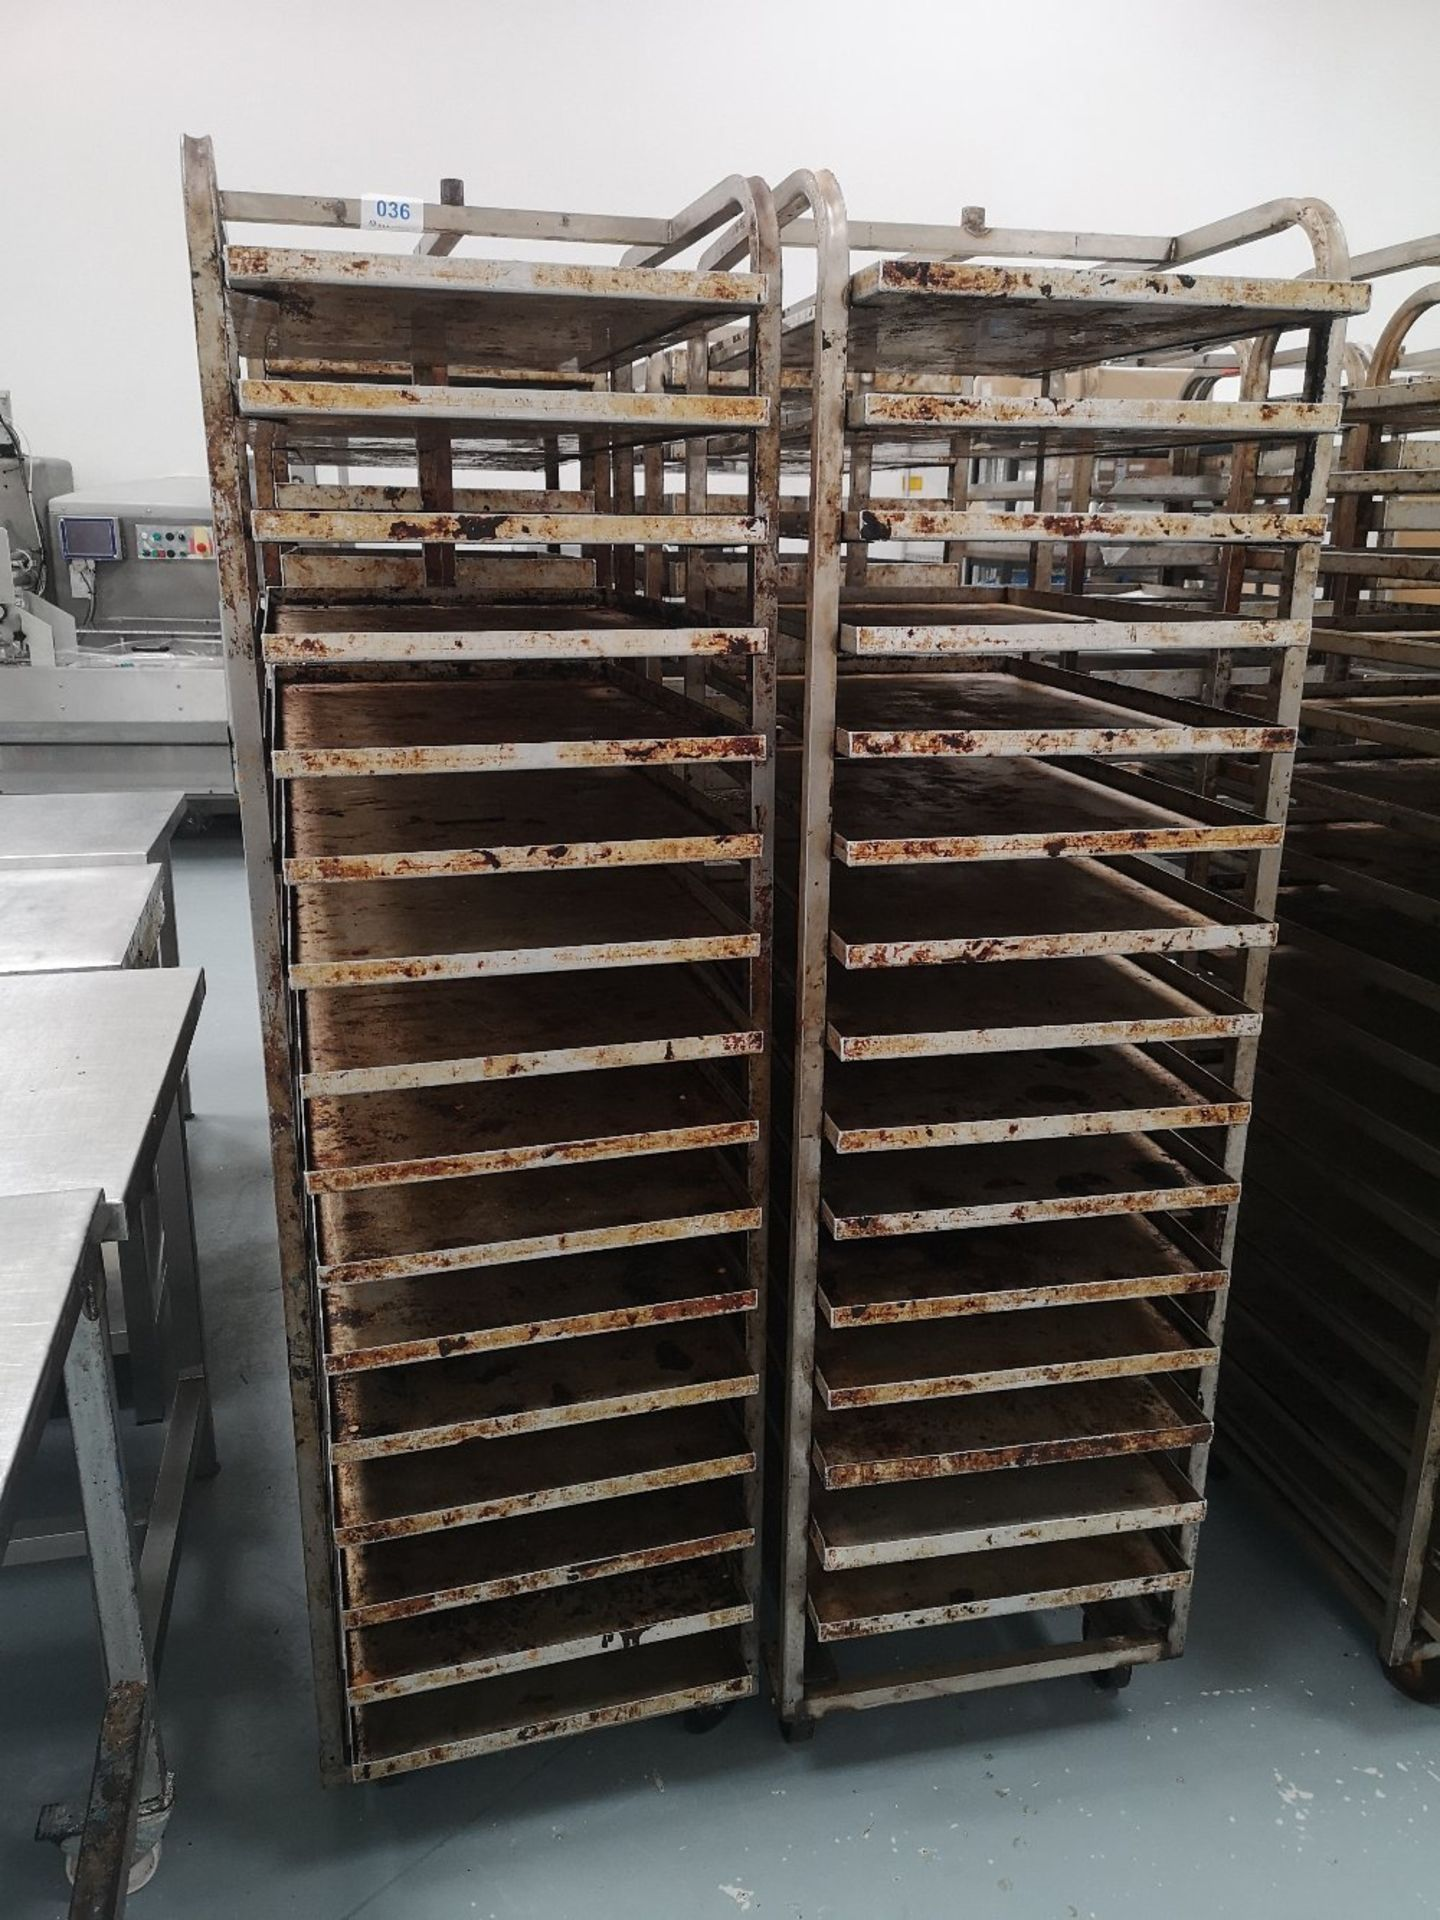 (2) Sixteen Slot Bakery Rack/Tray Stainless Steel Trollies - Image 3 of 3